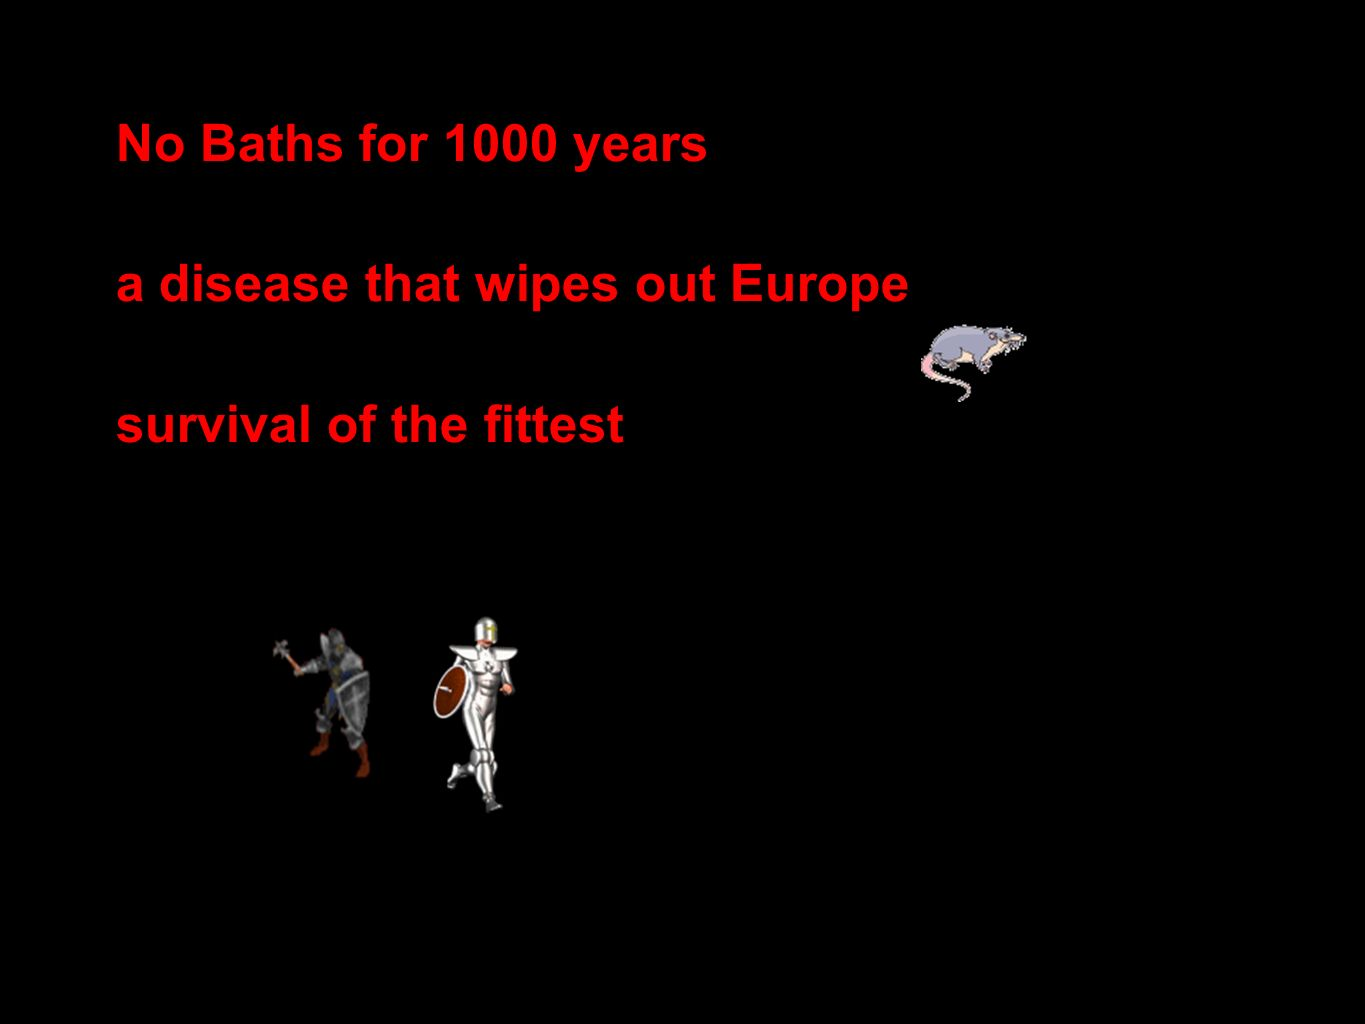 No Baths for 1000 years a disease that wipes out Europe survival of the fittest